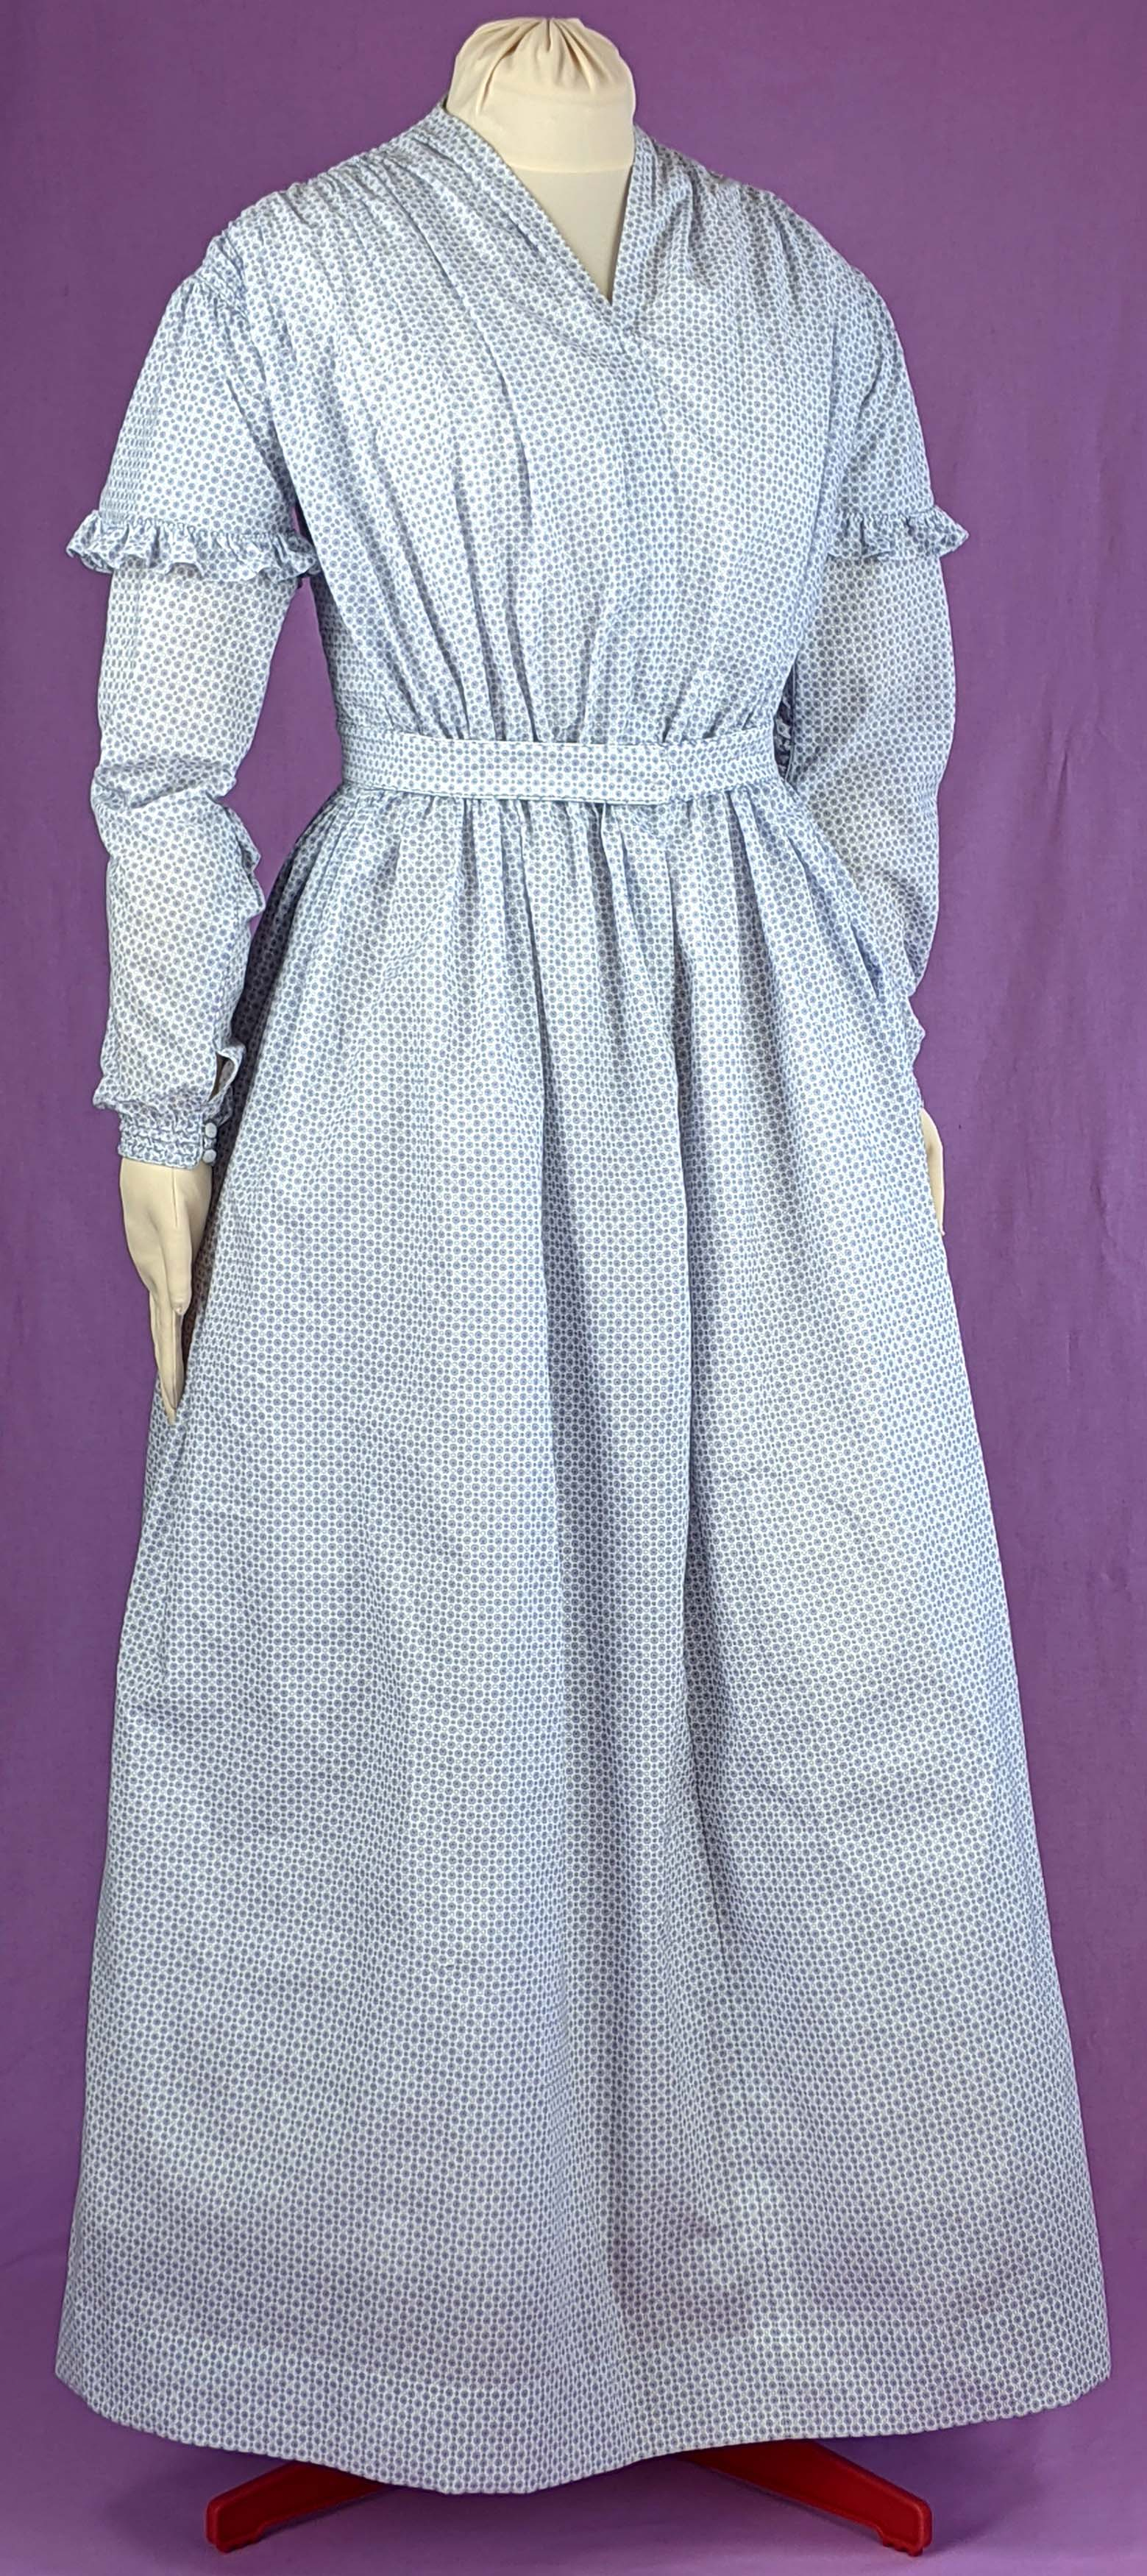 1840s Morning or Working Womans Dress Sewing Pattern #0121 Size US 8-30 (EU 34-56